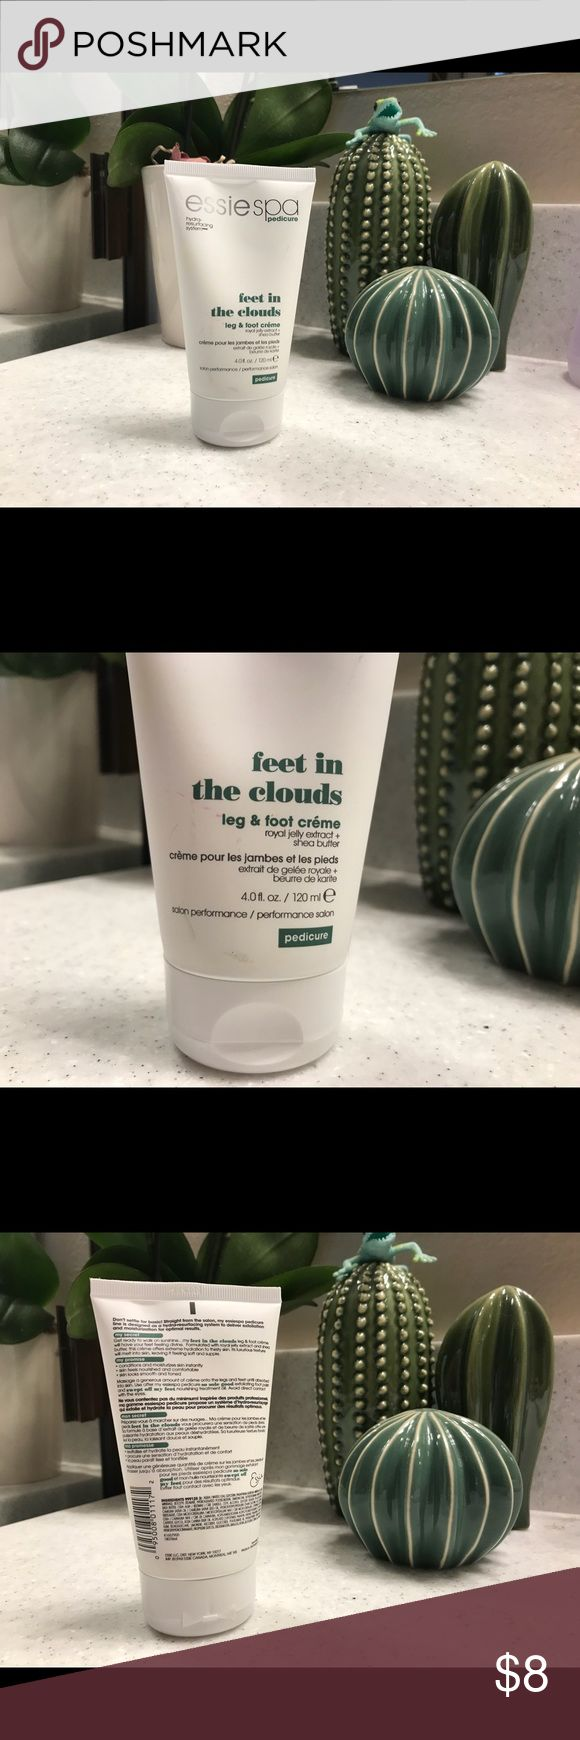 Essie Spa Pedicure Feet in the Clouds Lotion Leg & Foot Creme with royal Jelly extract and she's butter! Perfect for keeping your legs and feet silky smooth! Brand new! Essie Spa Other